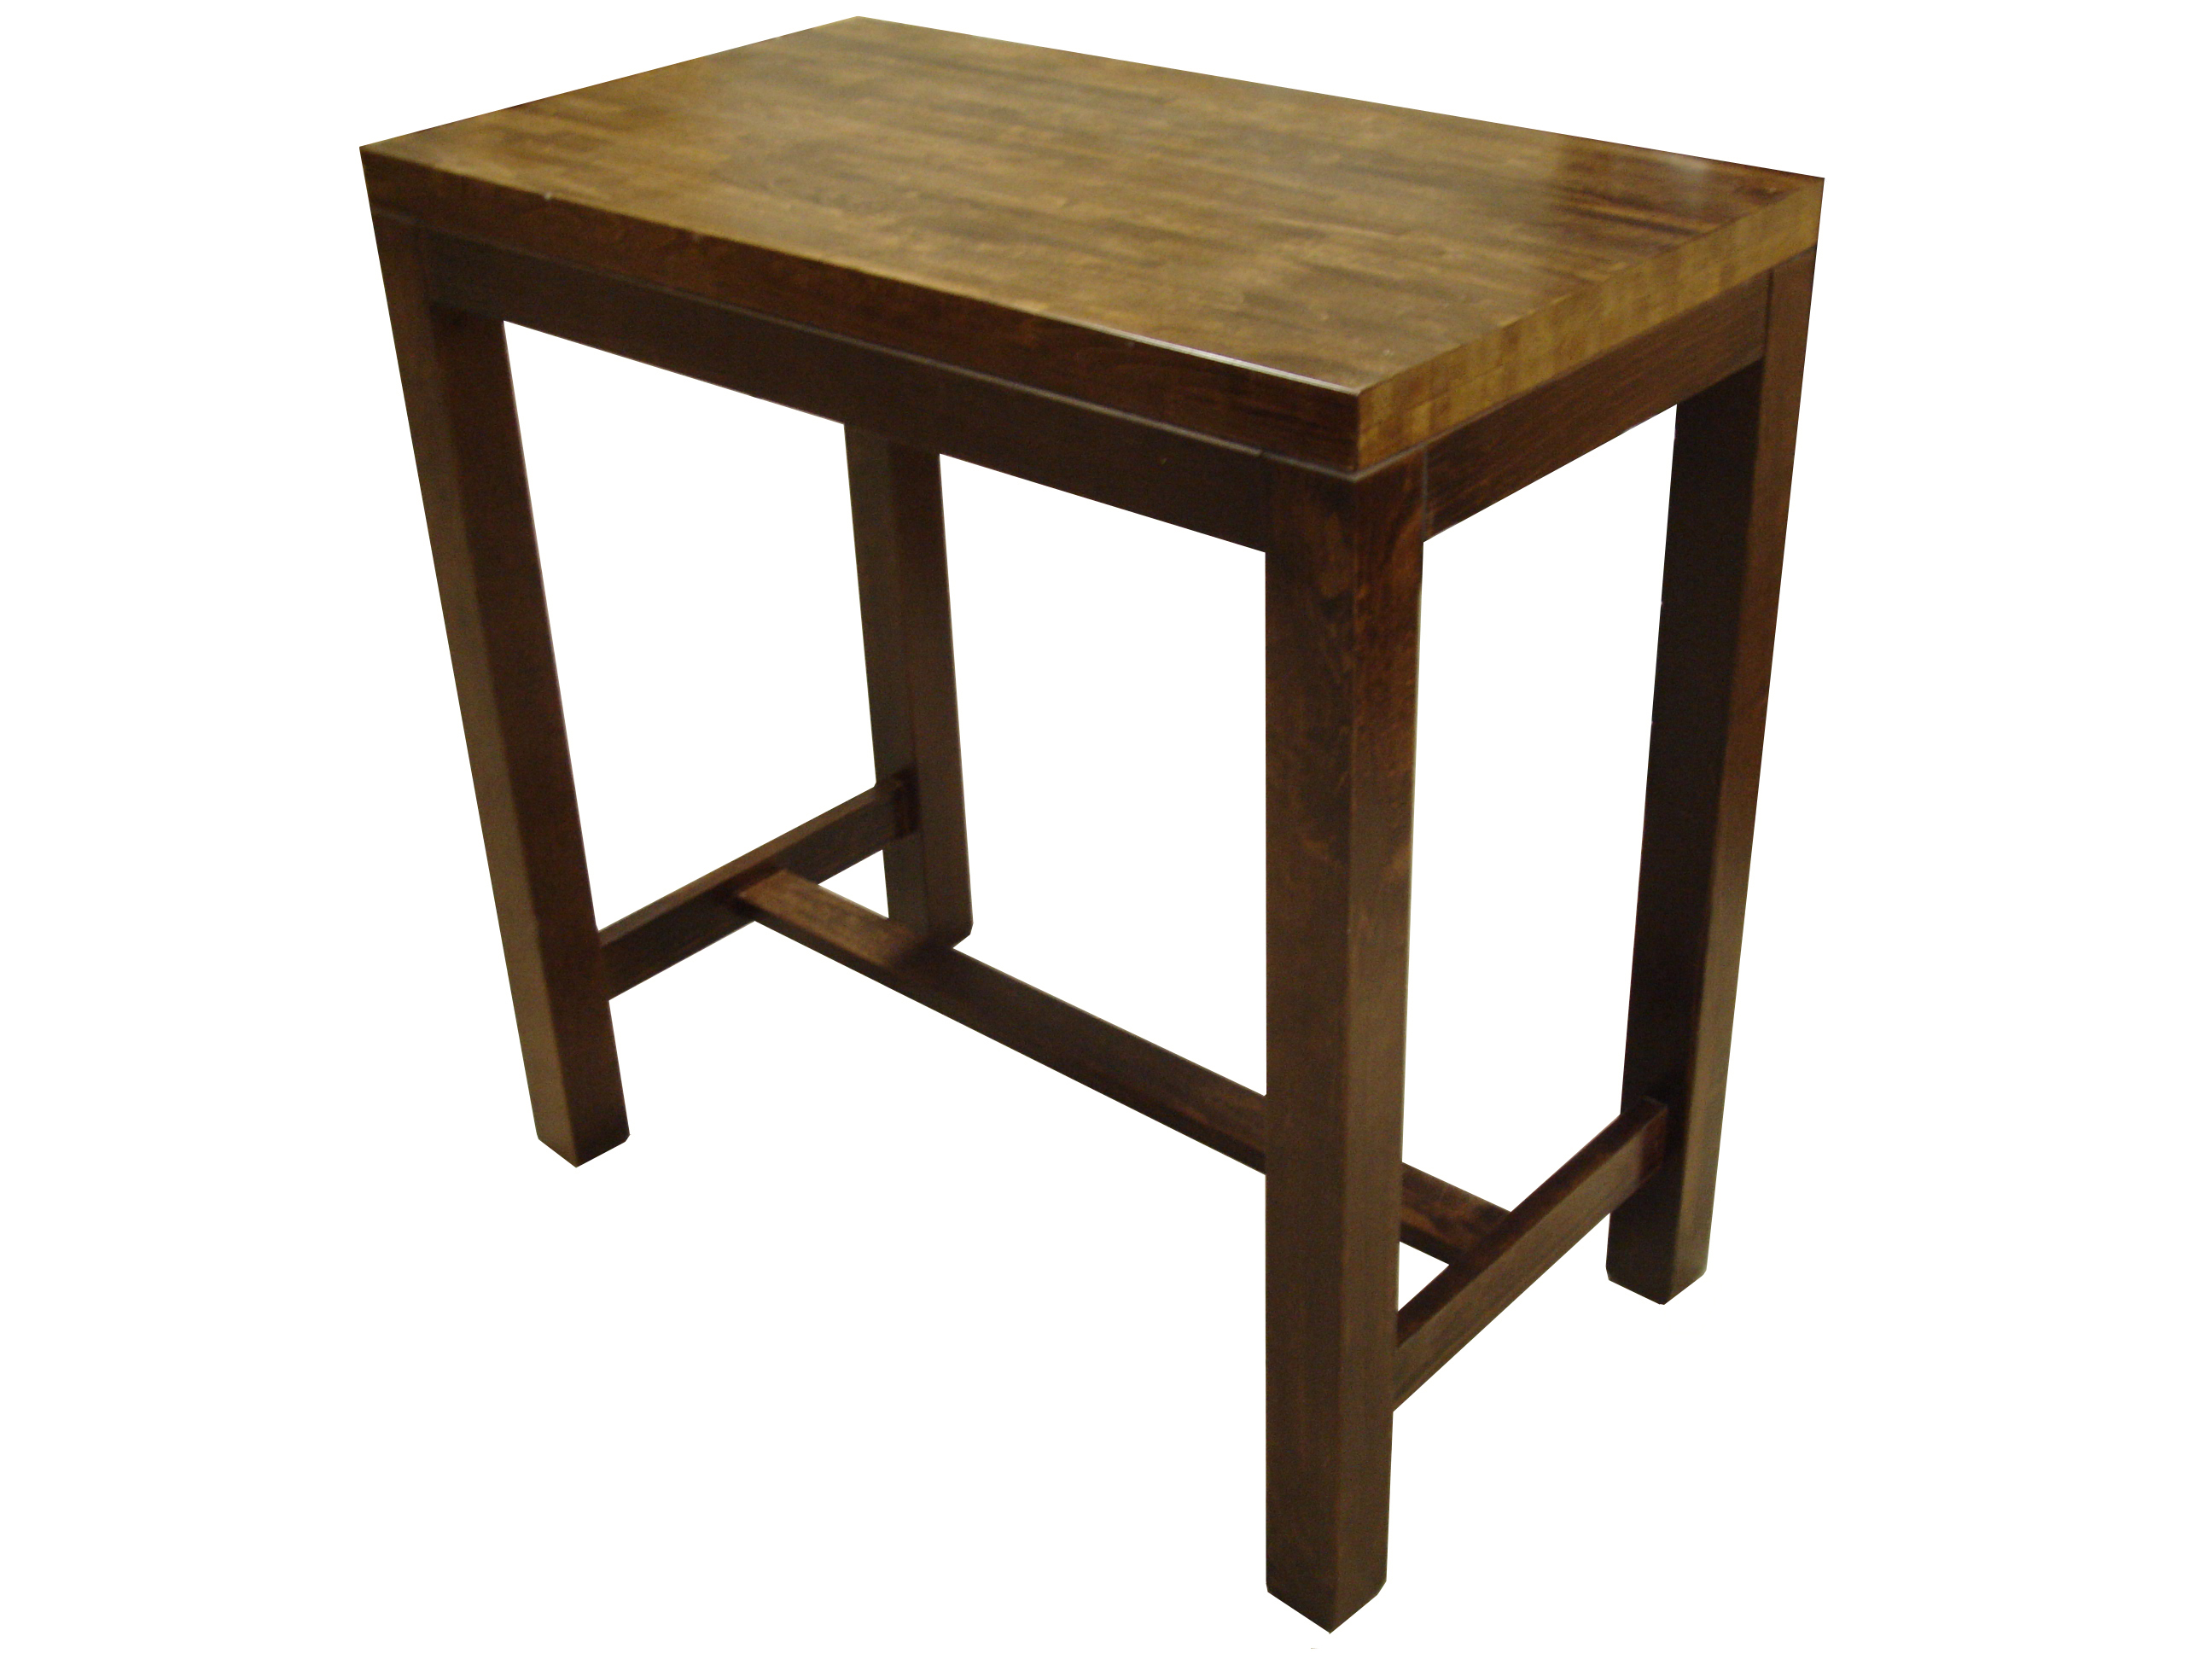 Butcher Block - The heavy duty table top